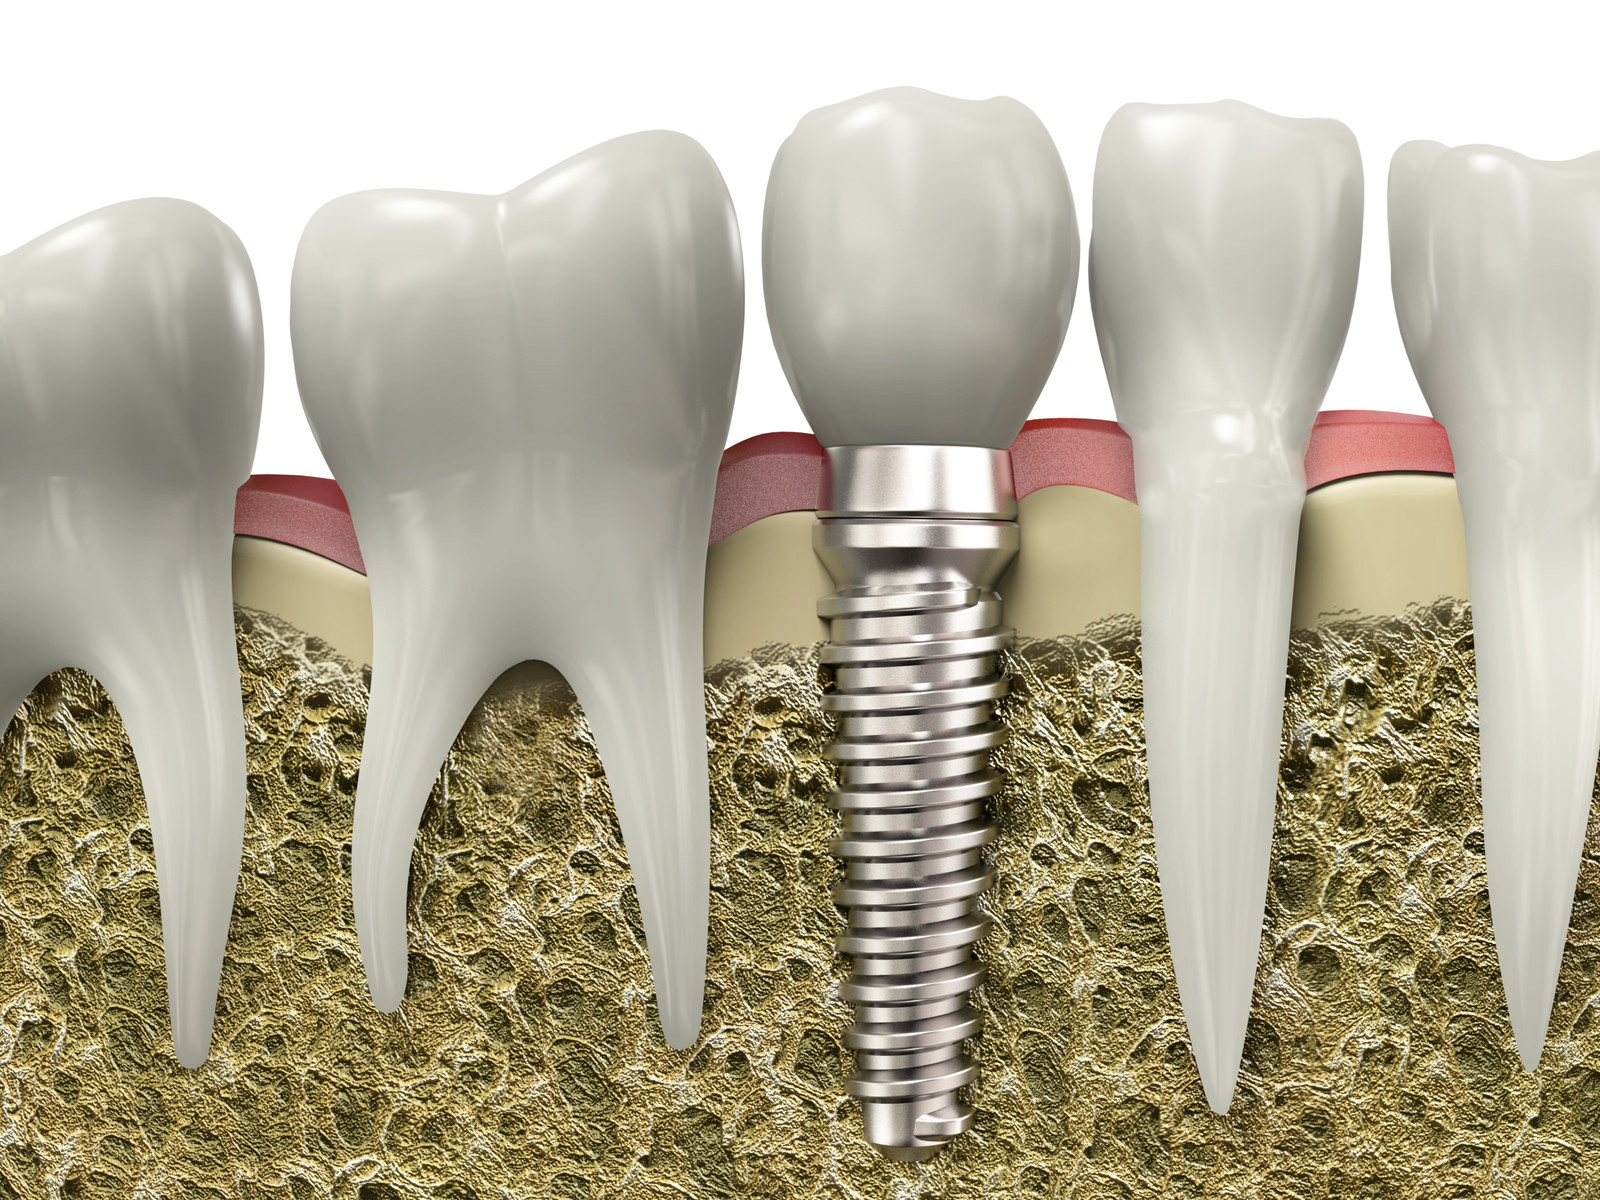 Solving Tooth Loss With Dental Implants